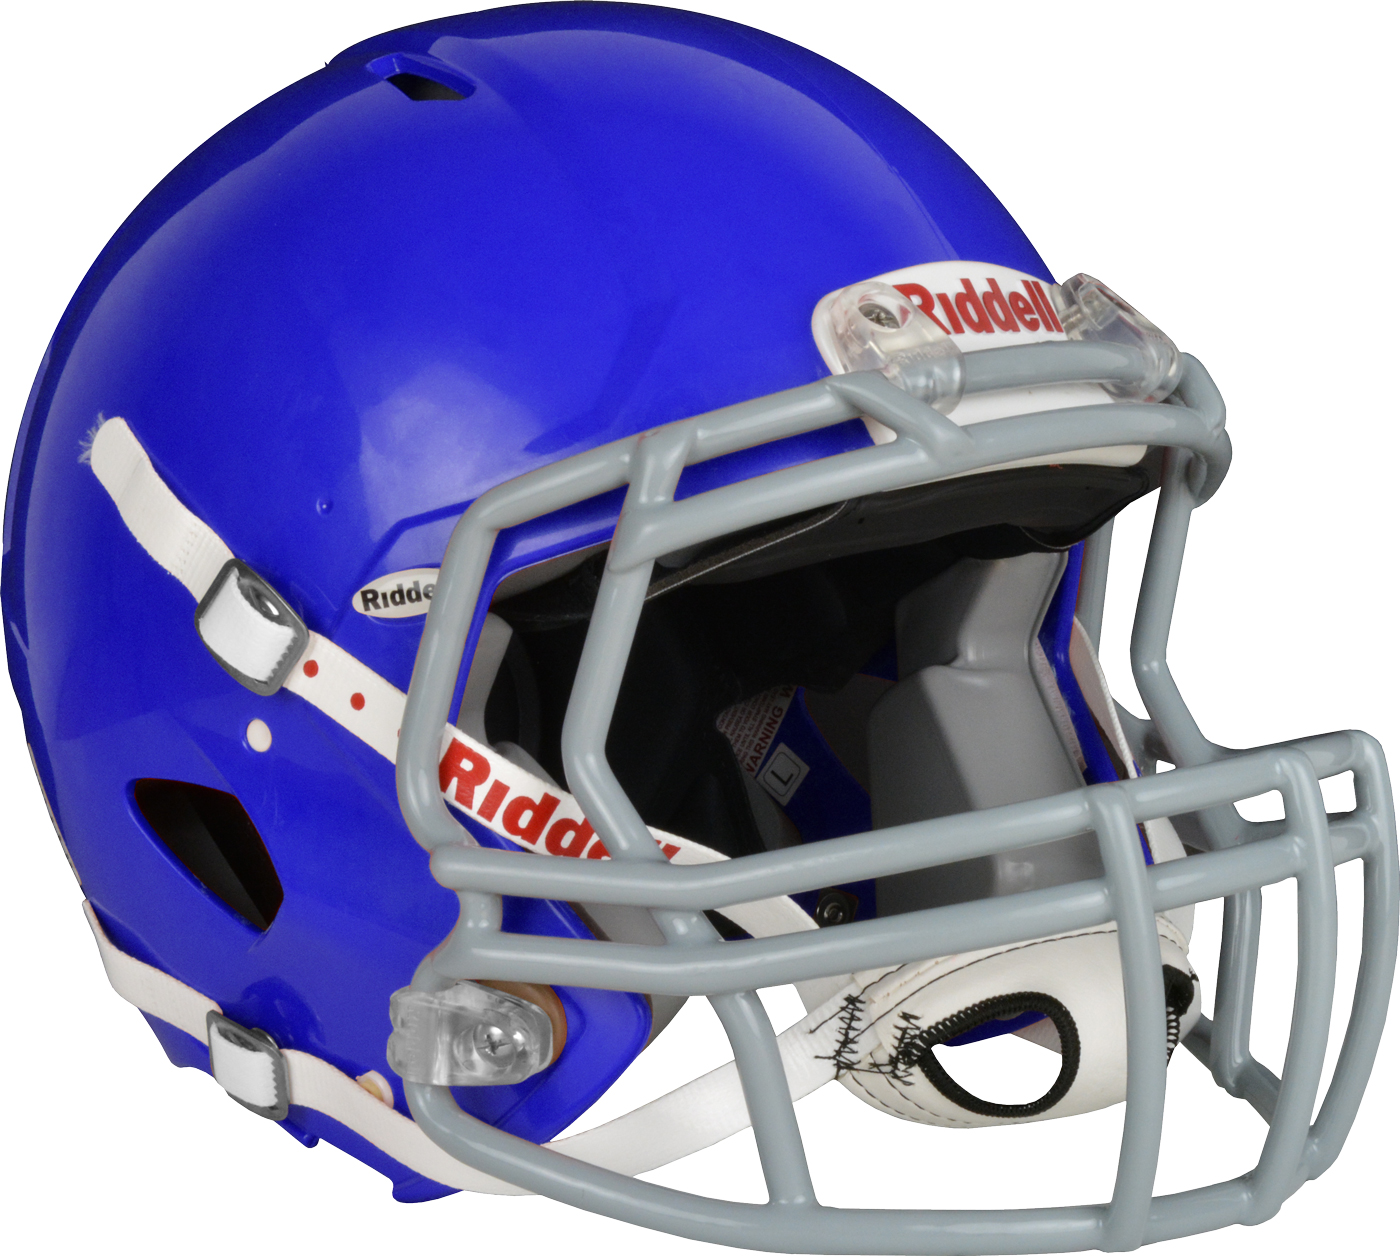 Riddell Victor Youth Football Helmet with Attached Facemask